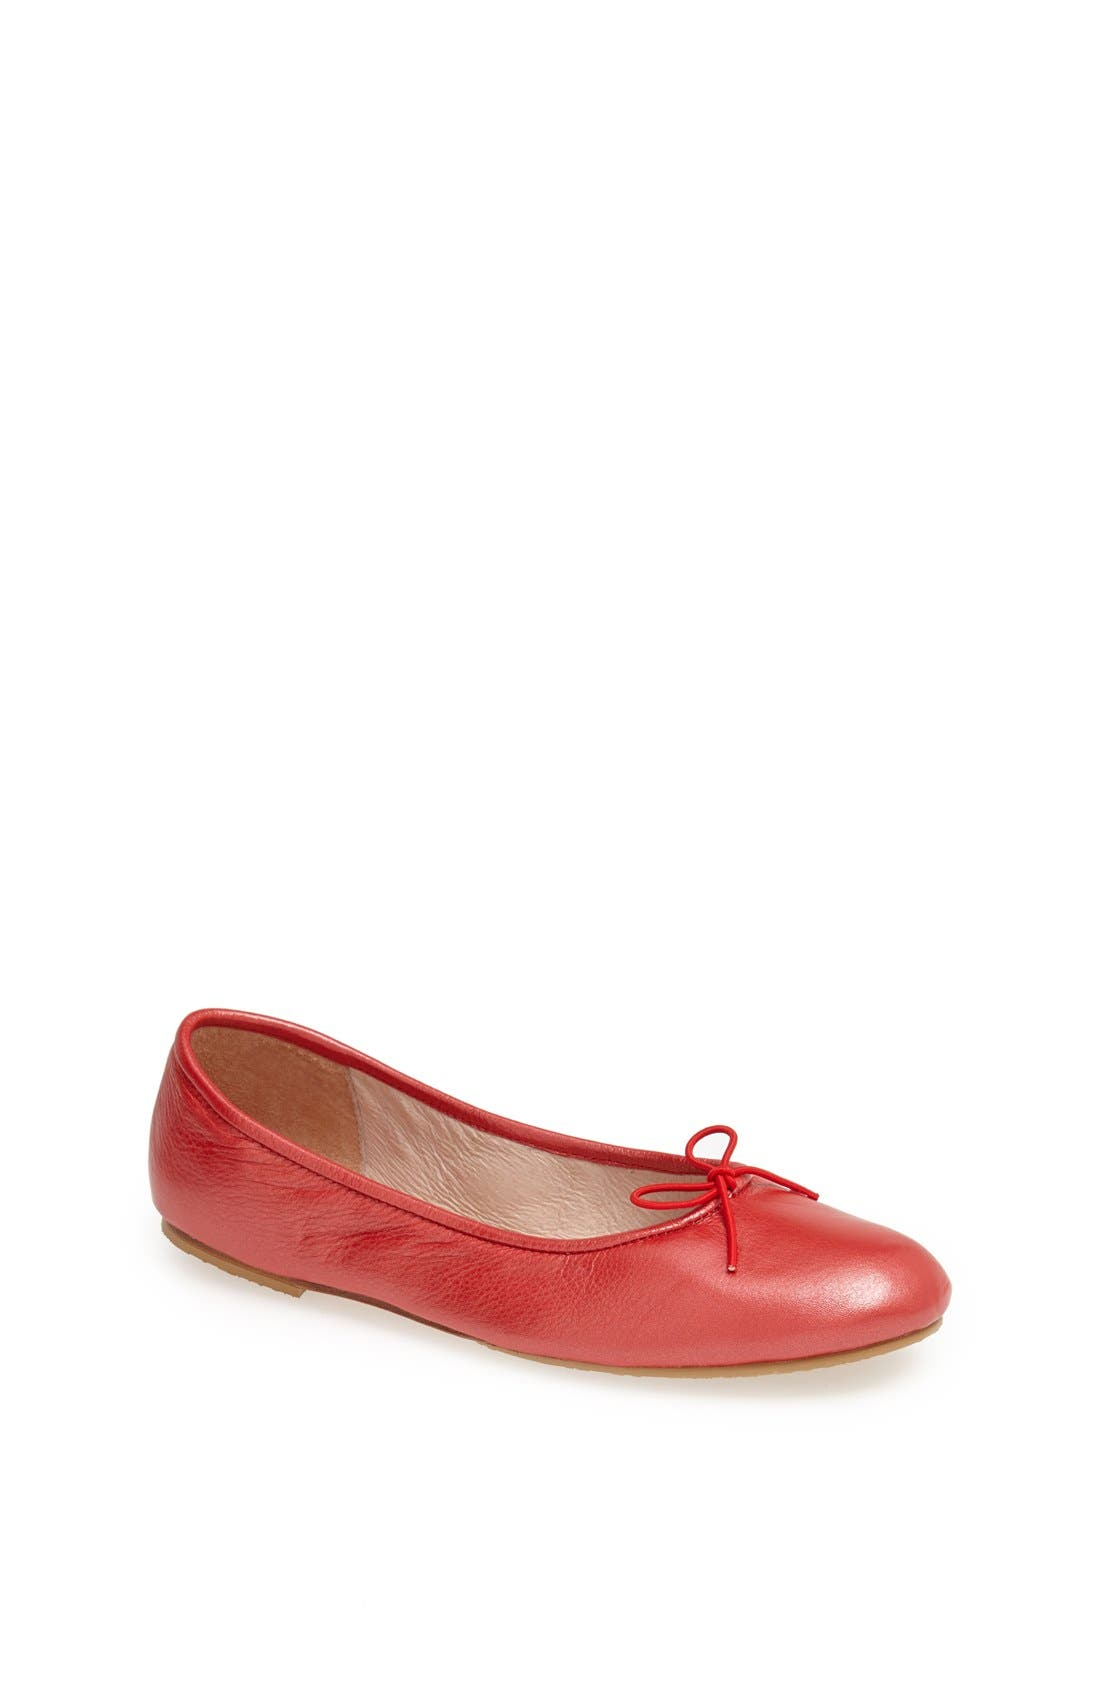 Main Image - Bloch 'Arabella' Ballet Flat (Little Kid & Big Kid)